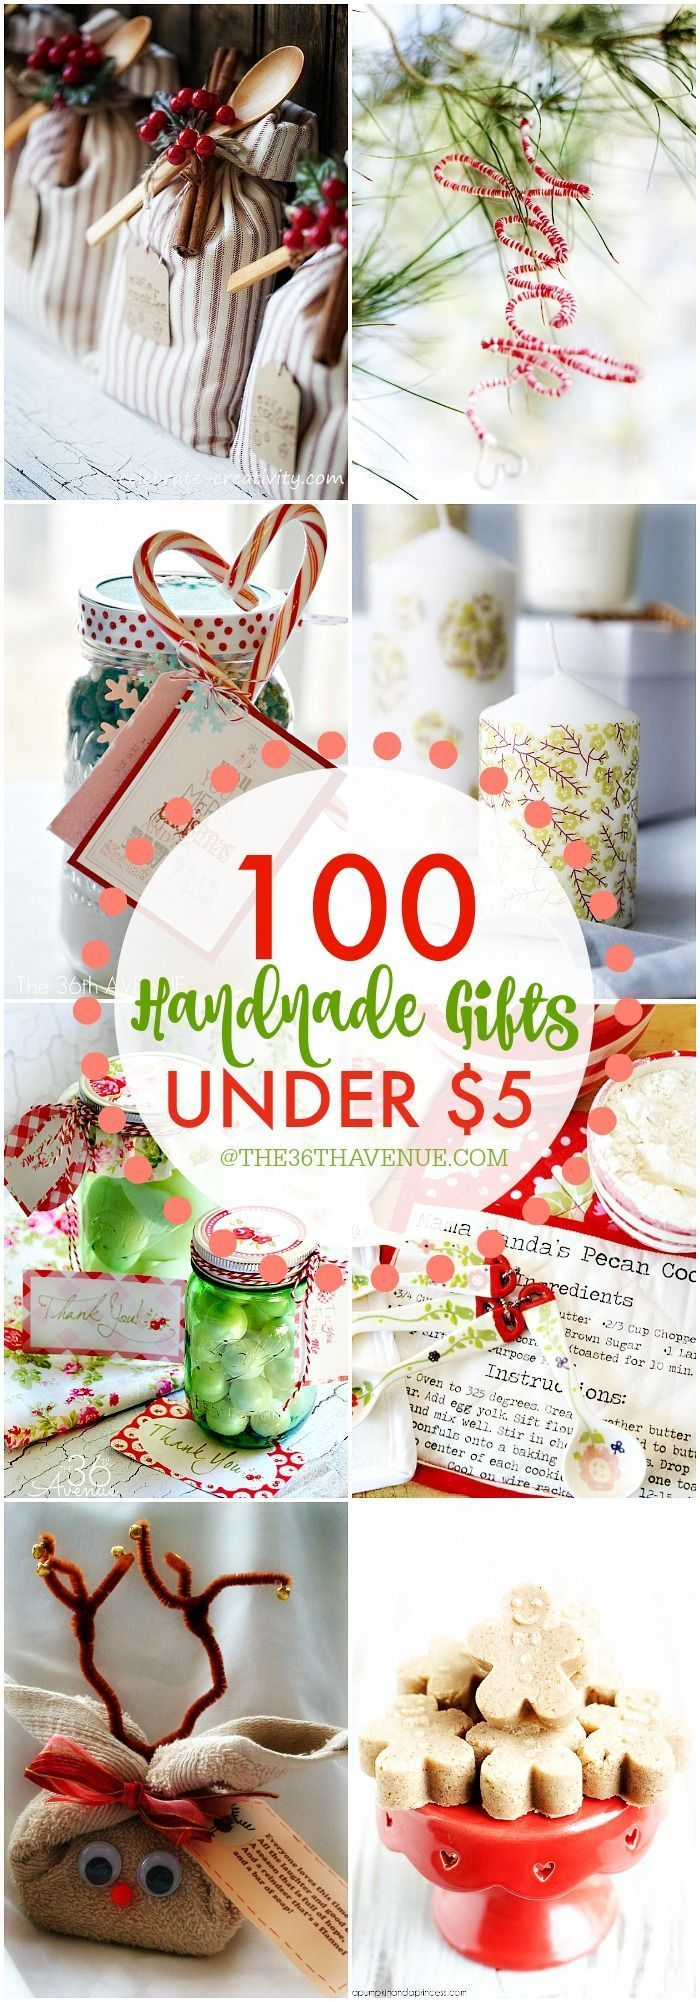 """On a budget, but still want to gift give? Over 100 Handmade Gifts that are perfect for Christmas gifts, birthday presents, and Mother's Day Gifts... These """"handmade gift ideas under five dollars"""" are super easy to make, adorable, and affordable!"""